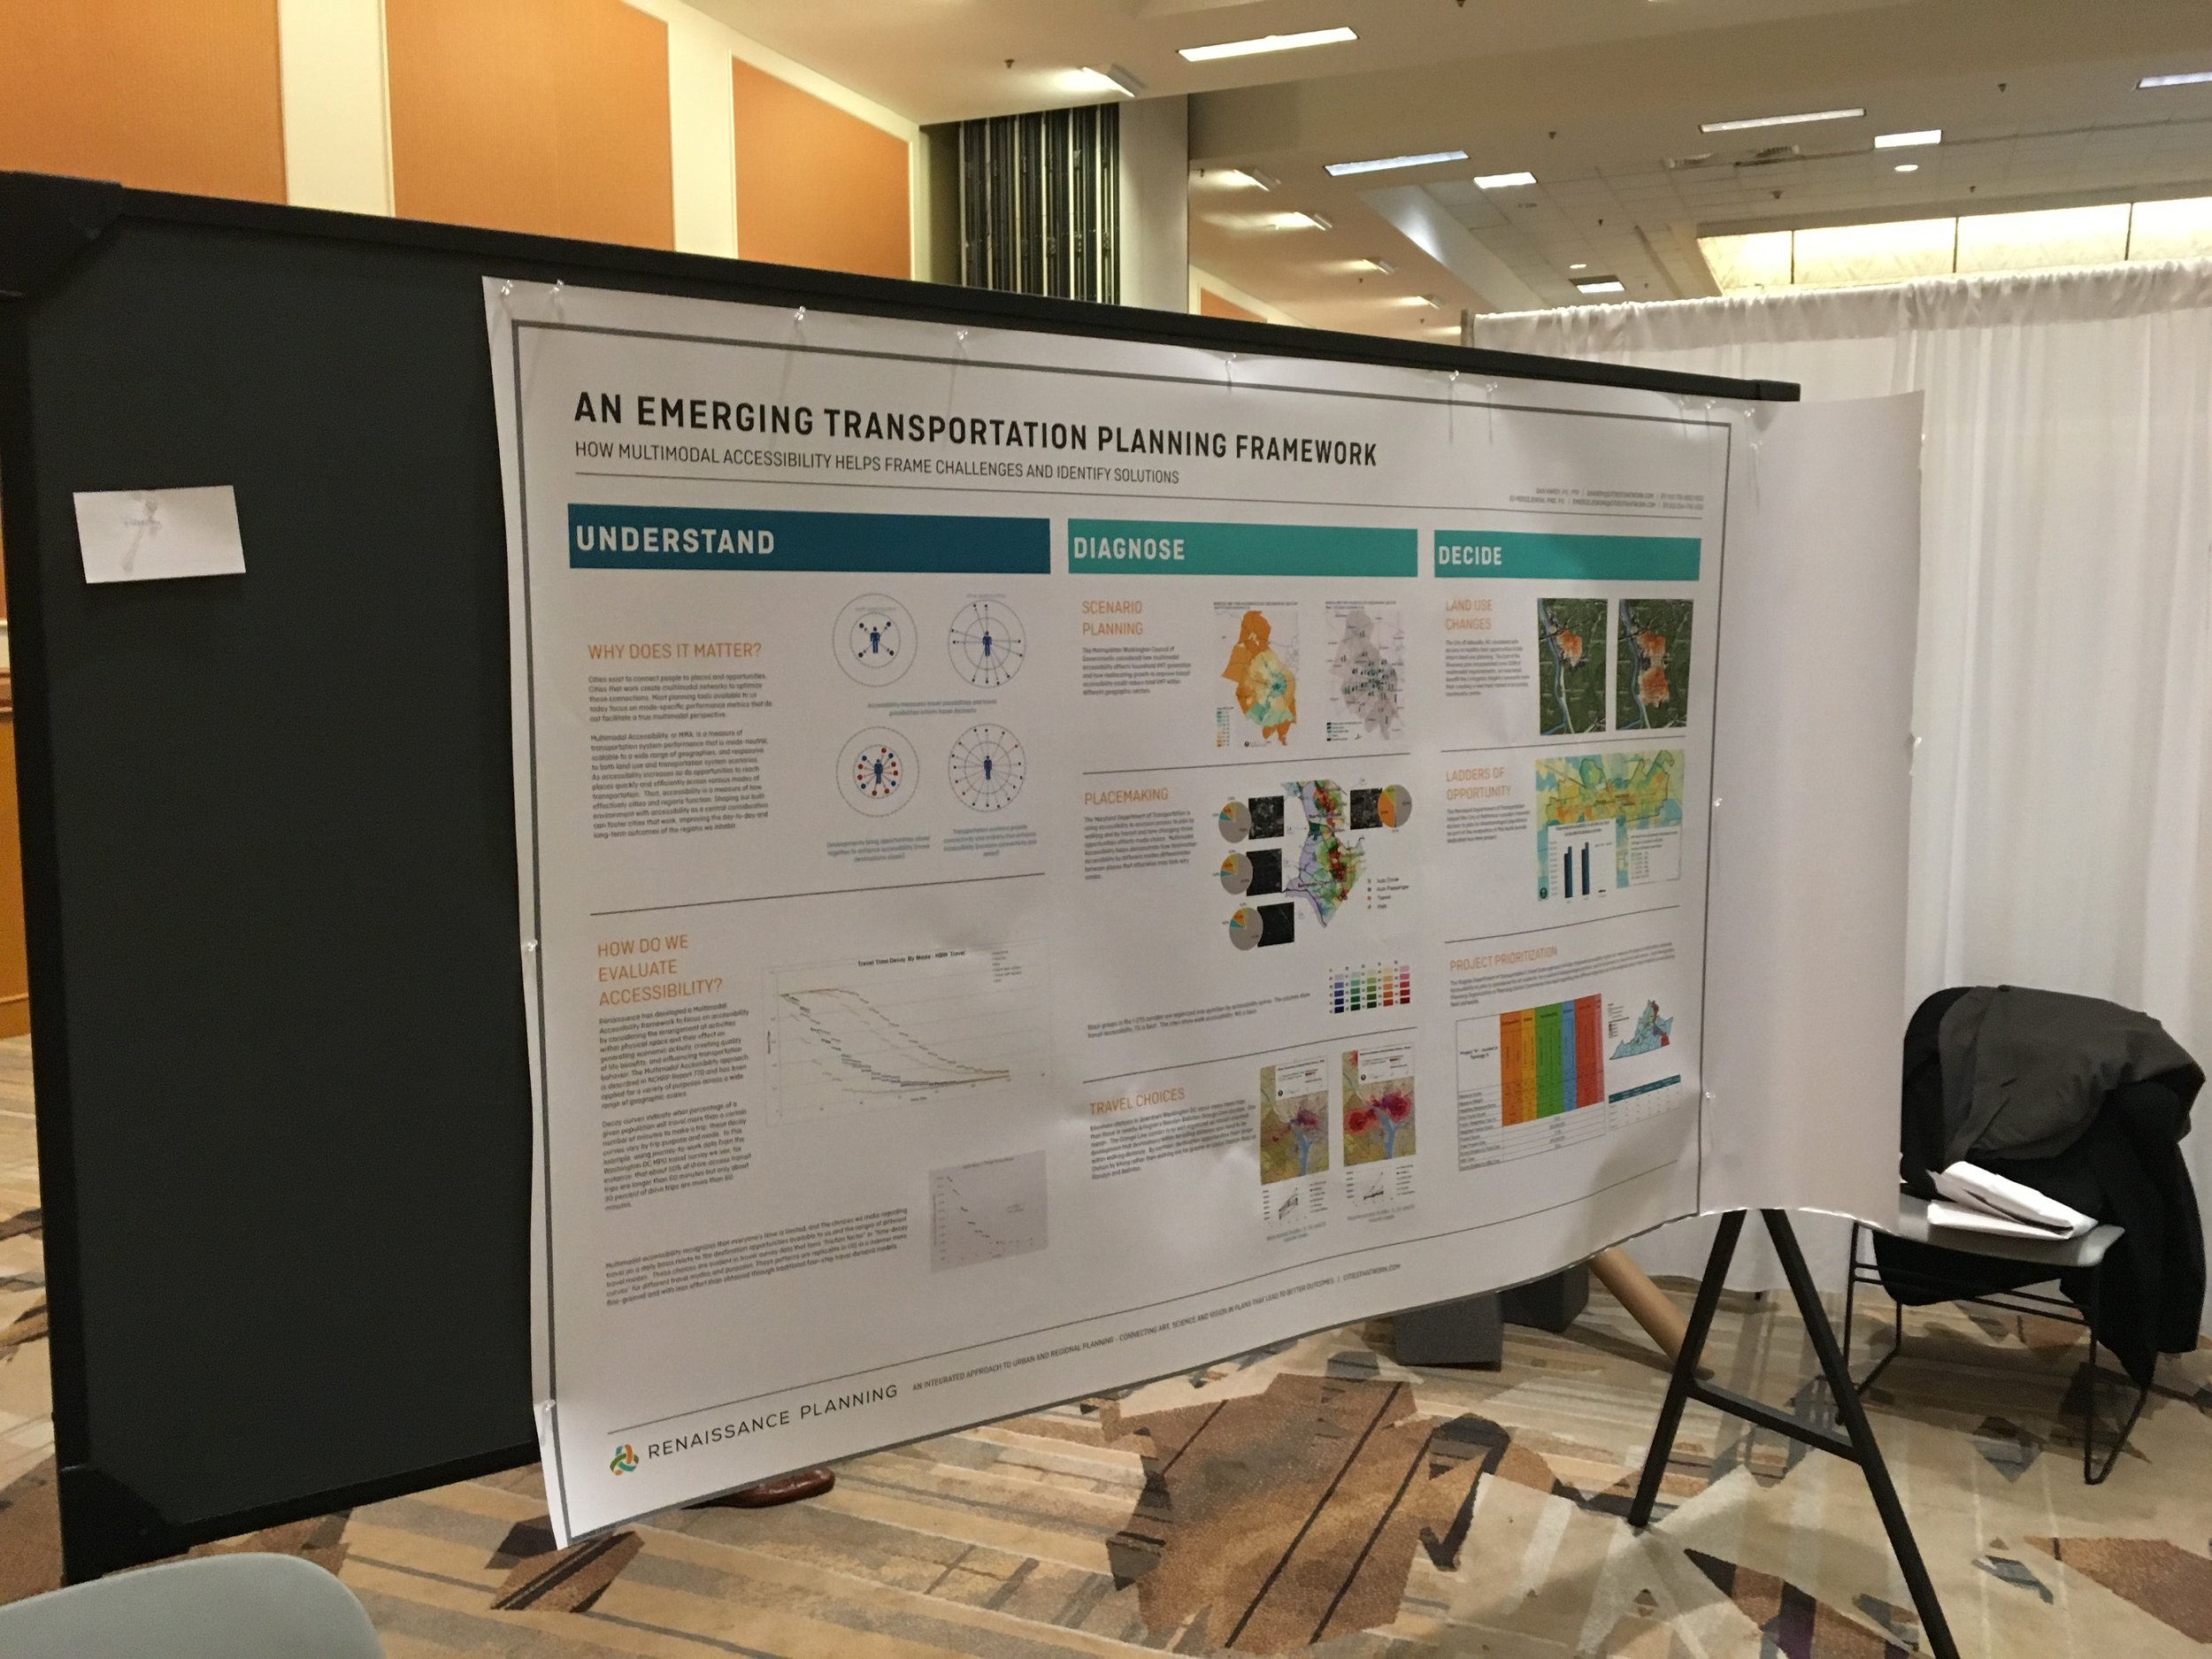 Renaissance Poster Session on Accessibility at ITE Conference